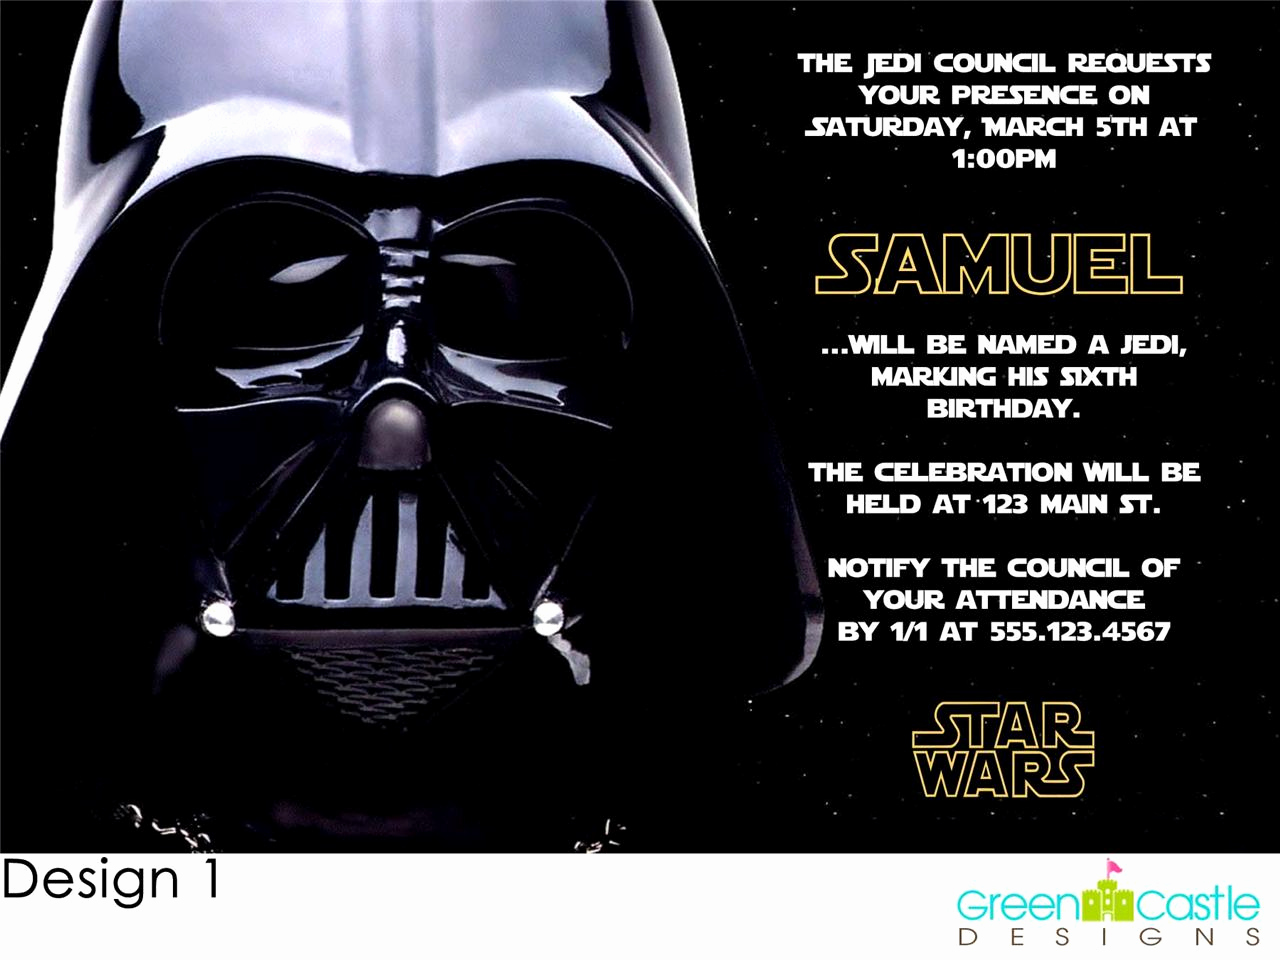 Star Wars Invitation Template Free New Free Star Wars Birthday Party Invitations Templates